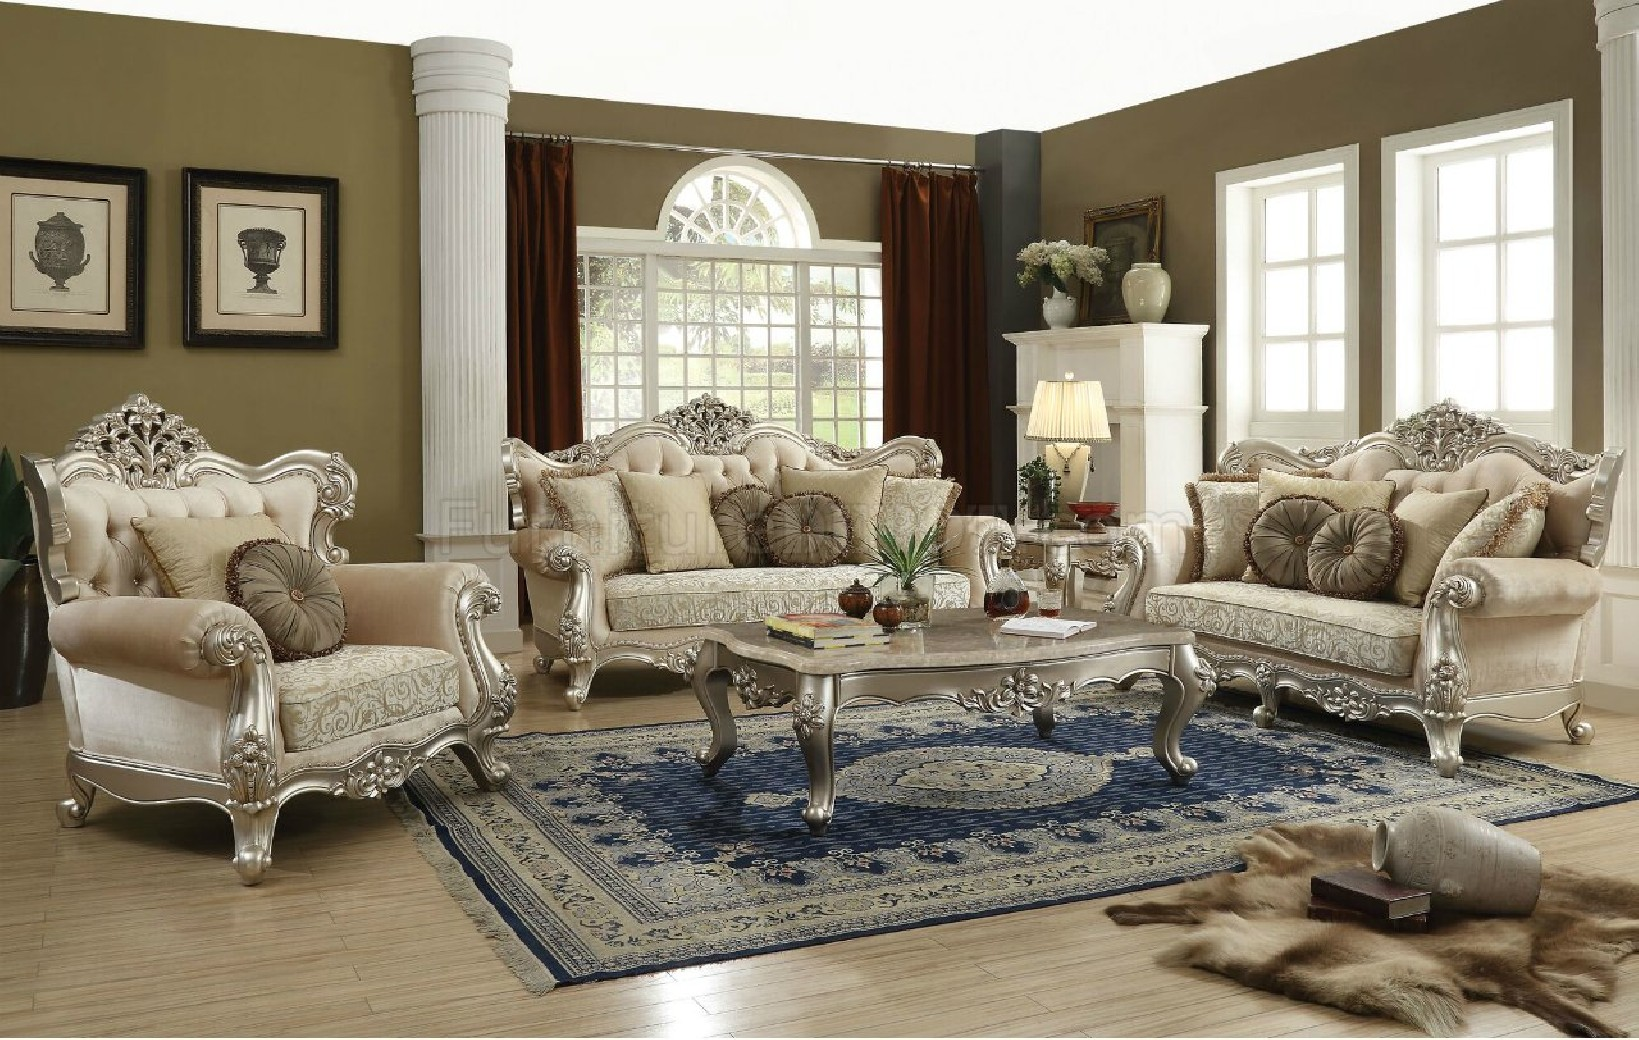 50660 Bently Sofa Collection Classic French Victorian Style By Acme Furniture